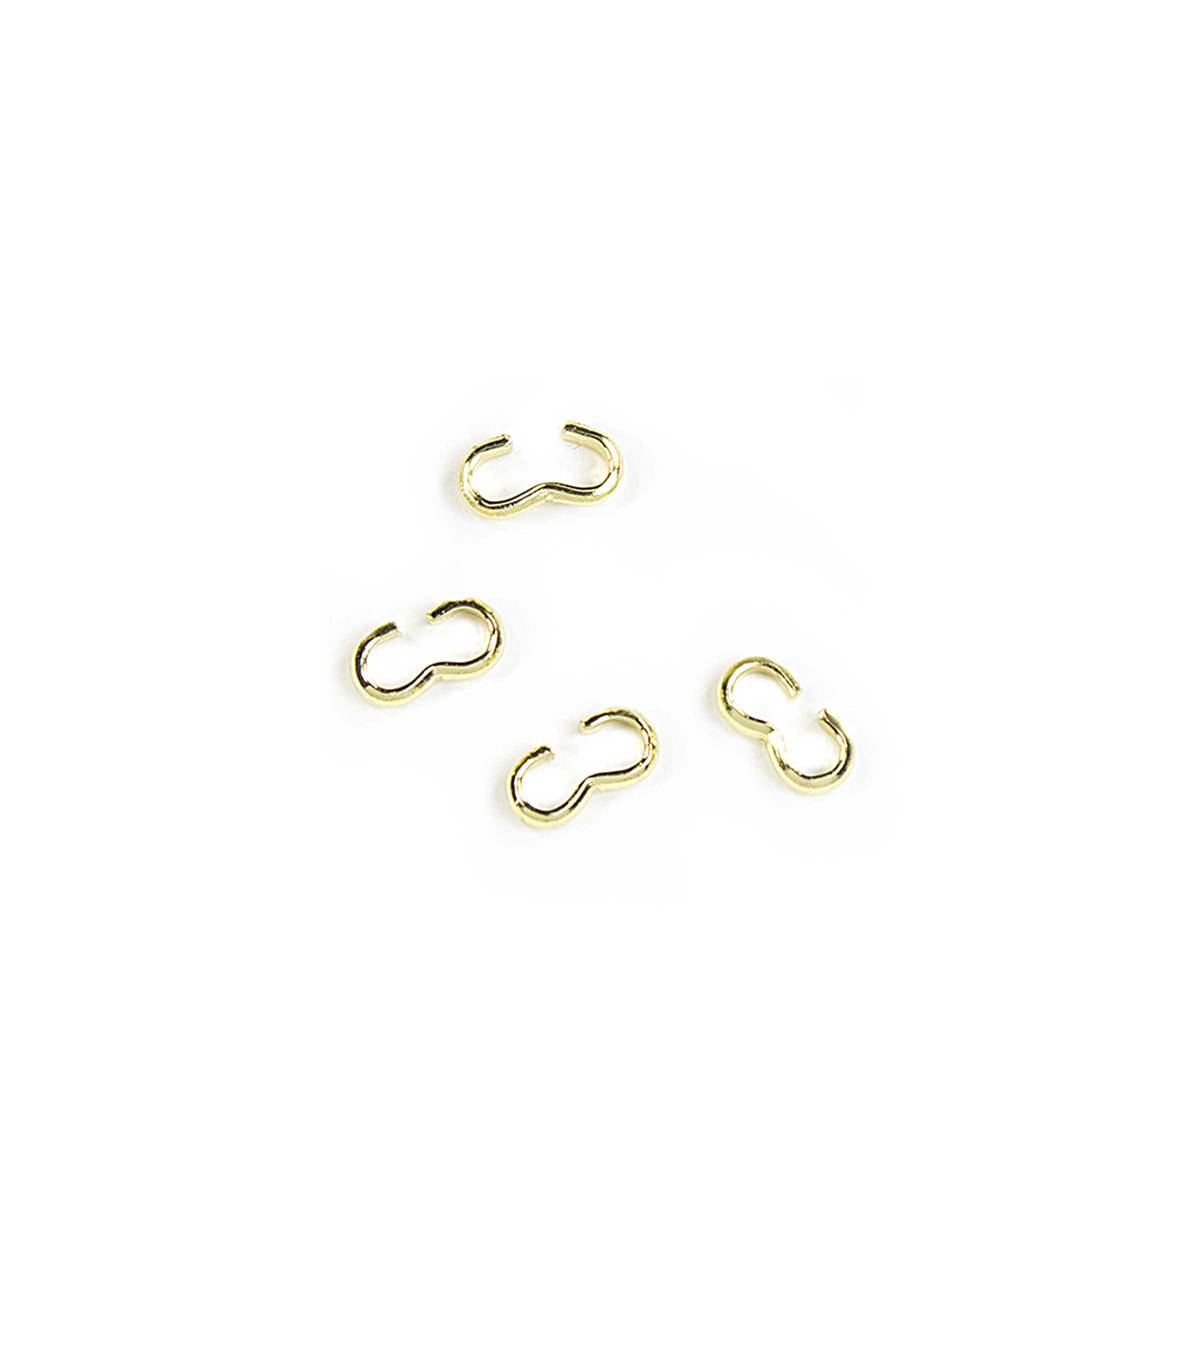 Blue Moon Findings Connector Metal Figure 8 7mm Gold